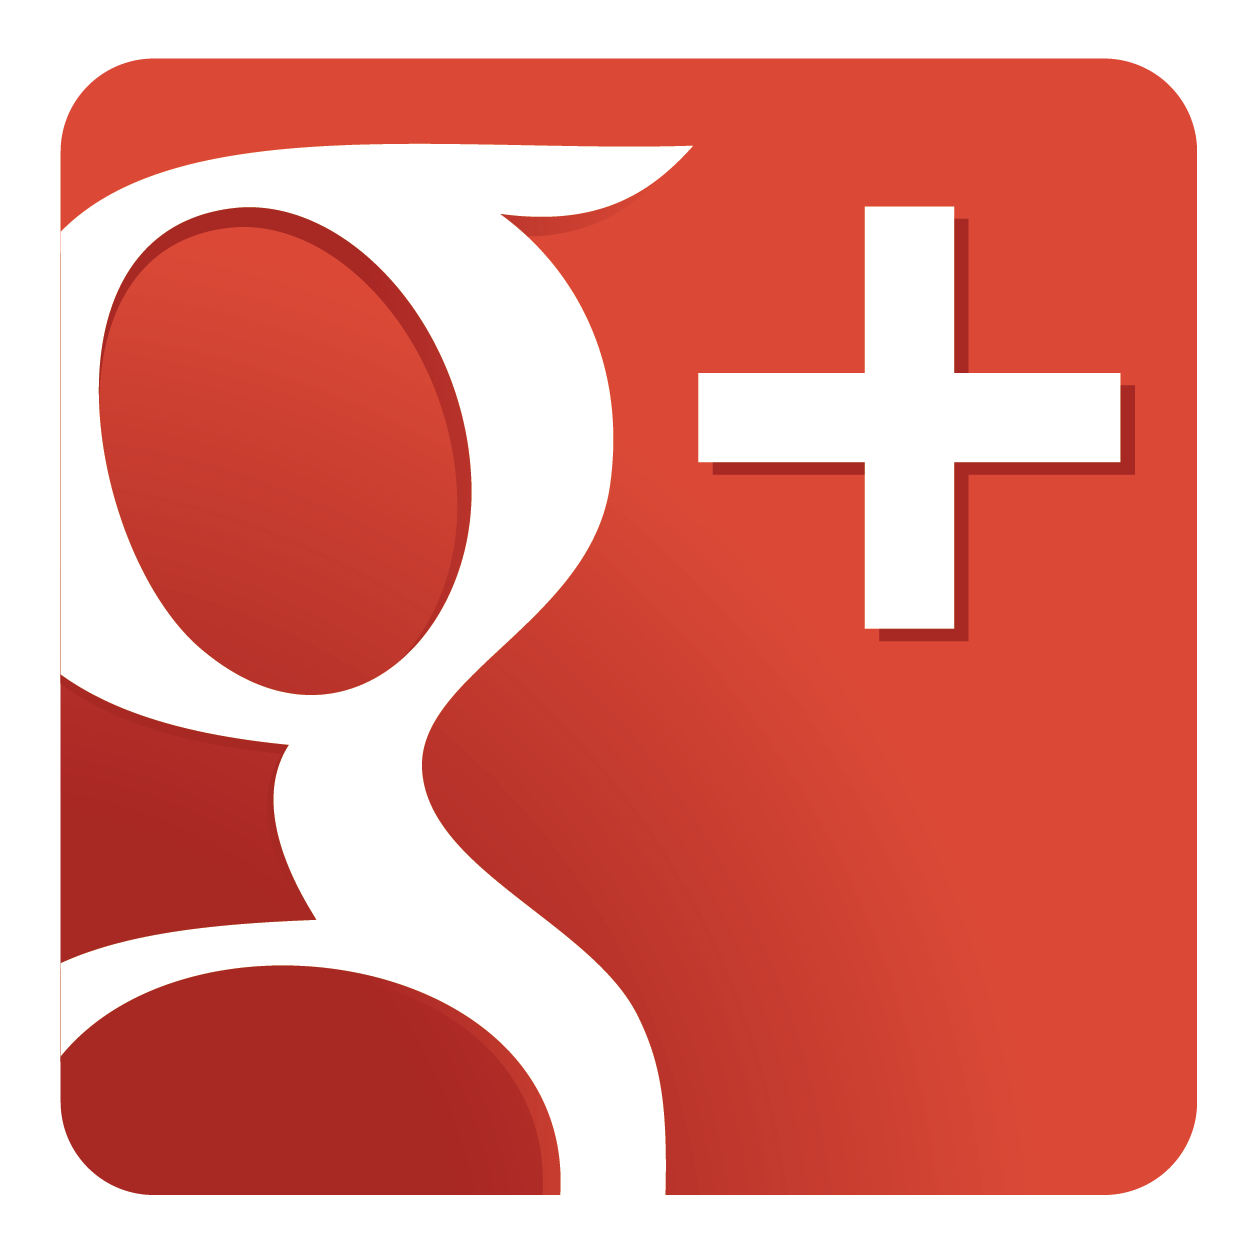 Gmail logo vector png. Google plus icon and